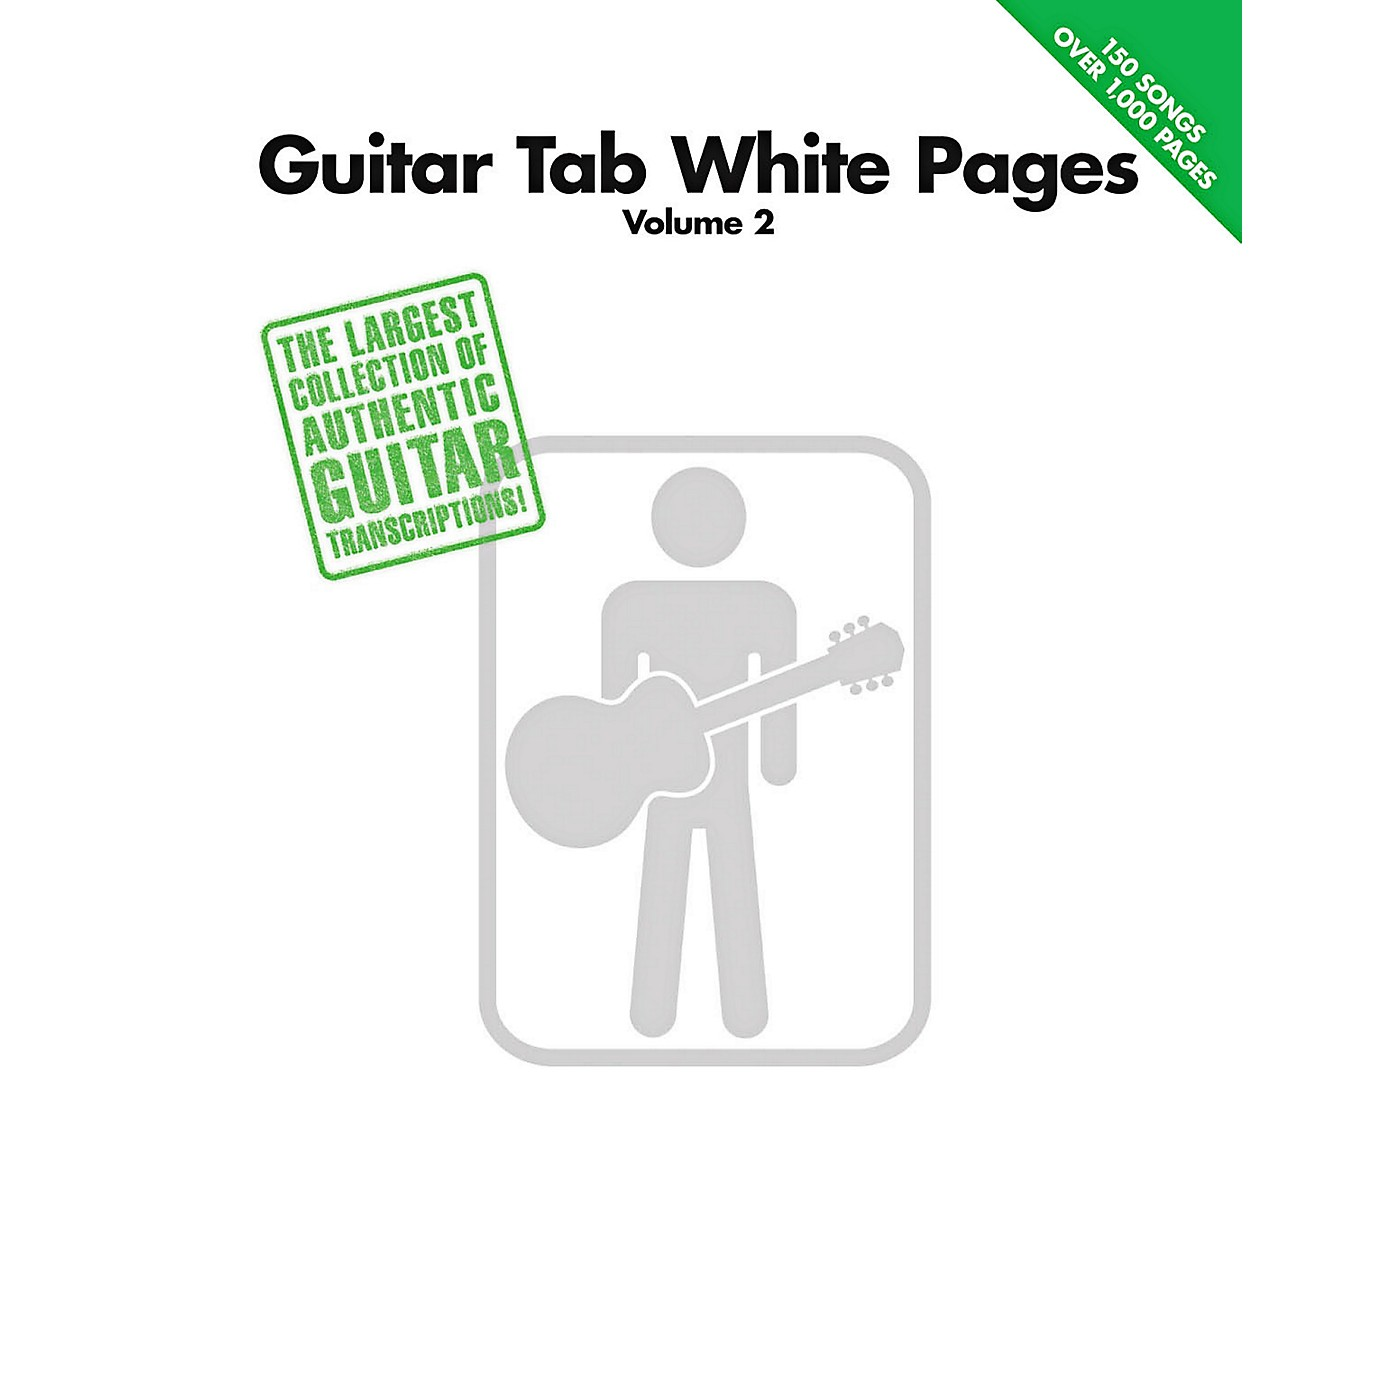 Hal Leonard Guitar Tab White Pages Volume 2 Songbook thumbnail